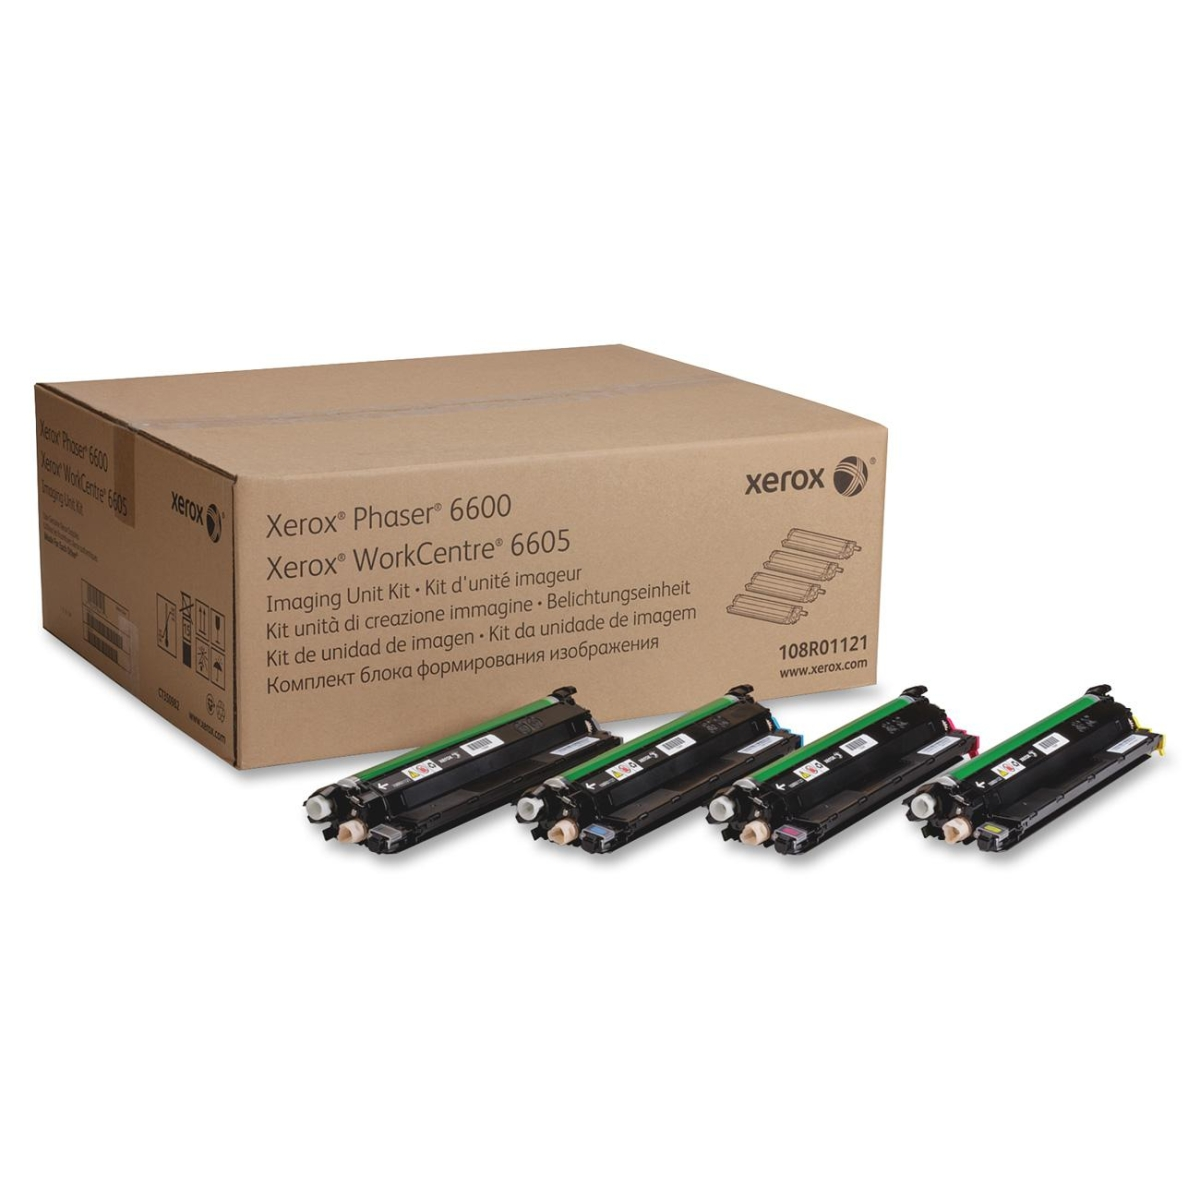 Phaser 6600 VersaLink C400 C405 WorkCentre 6605 MFP Imaging Unit Kit (Includes 4 Imaging Units 1 for Each Color) (60000 Yield)